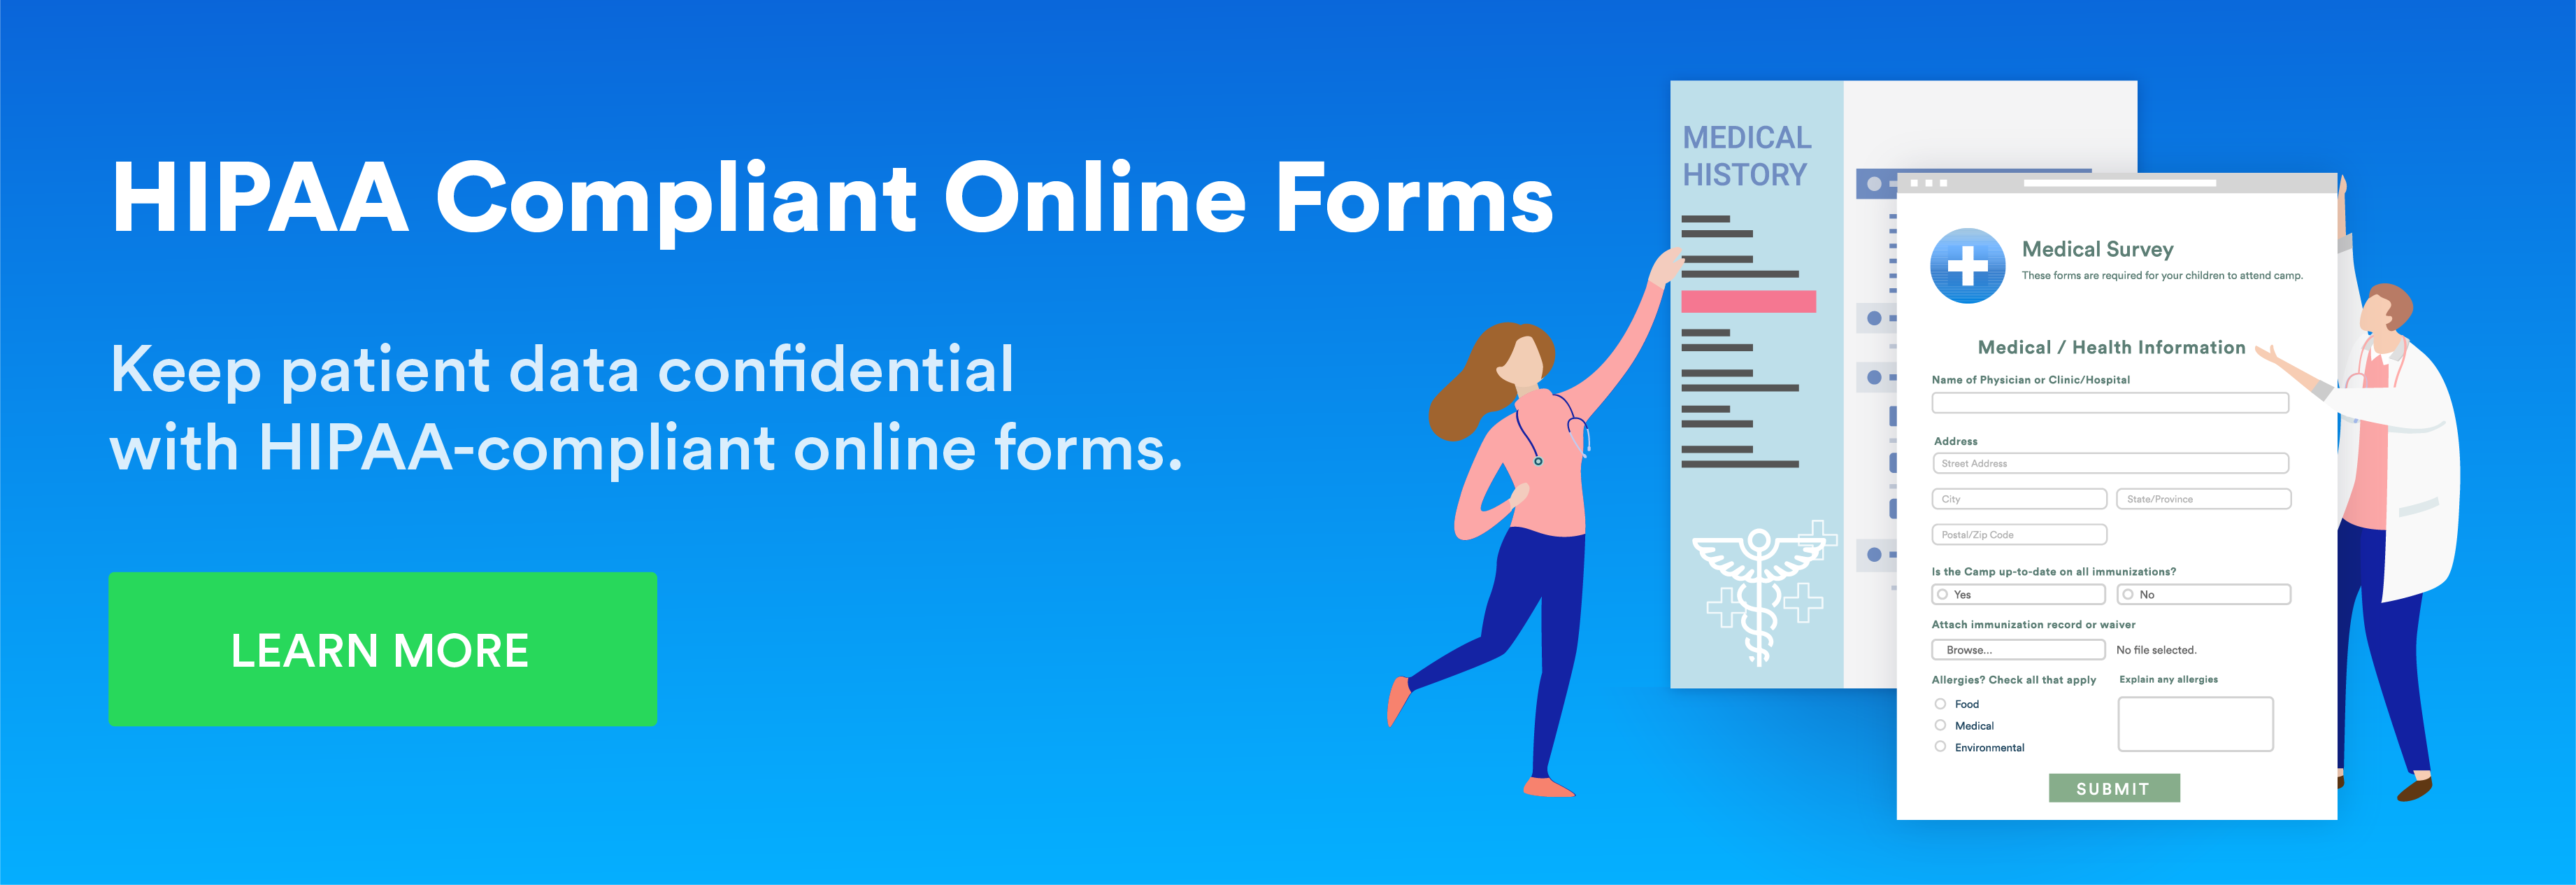 Keep patient data confidential with HIPAA-compliant online forms.